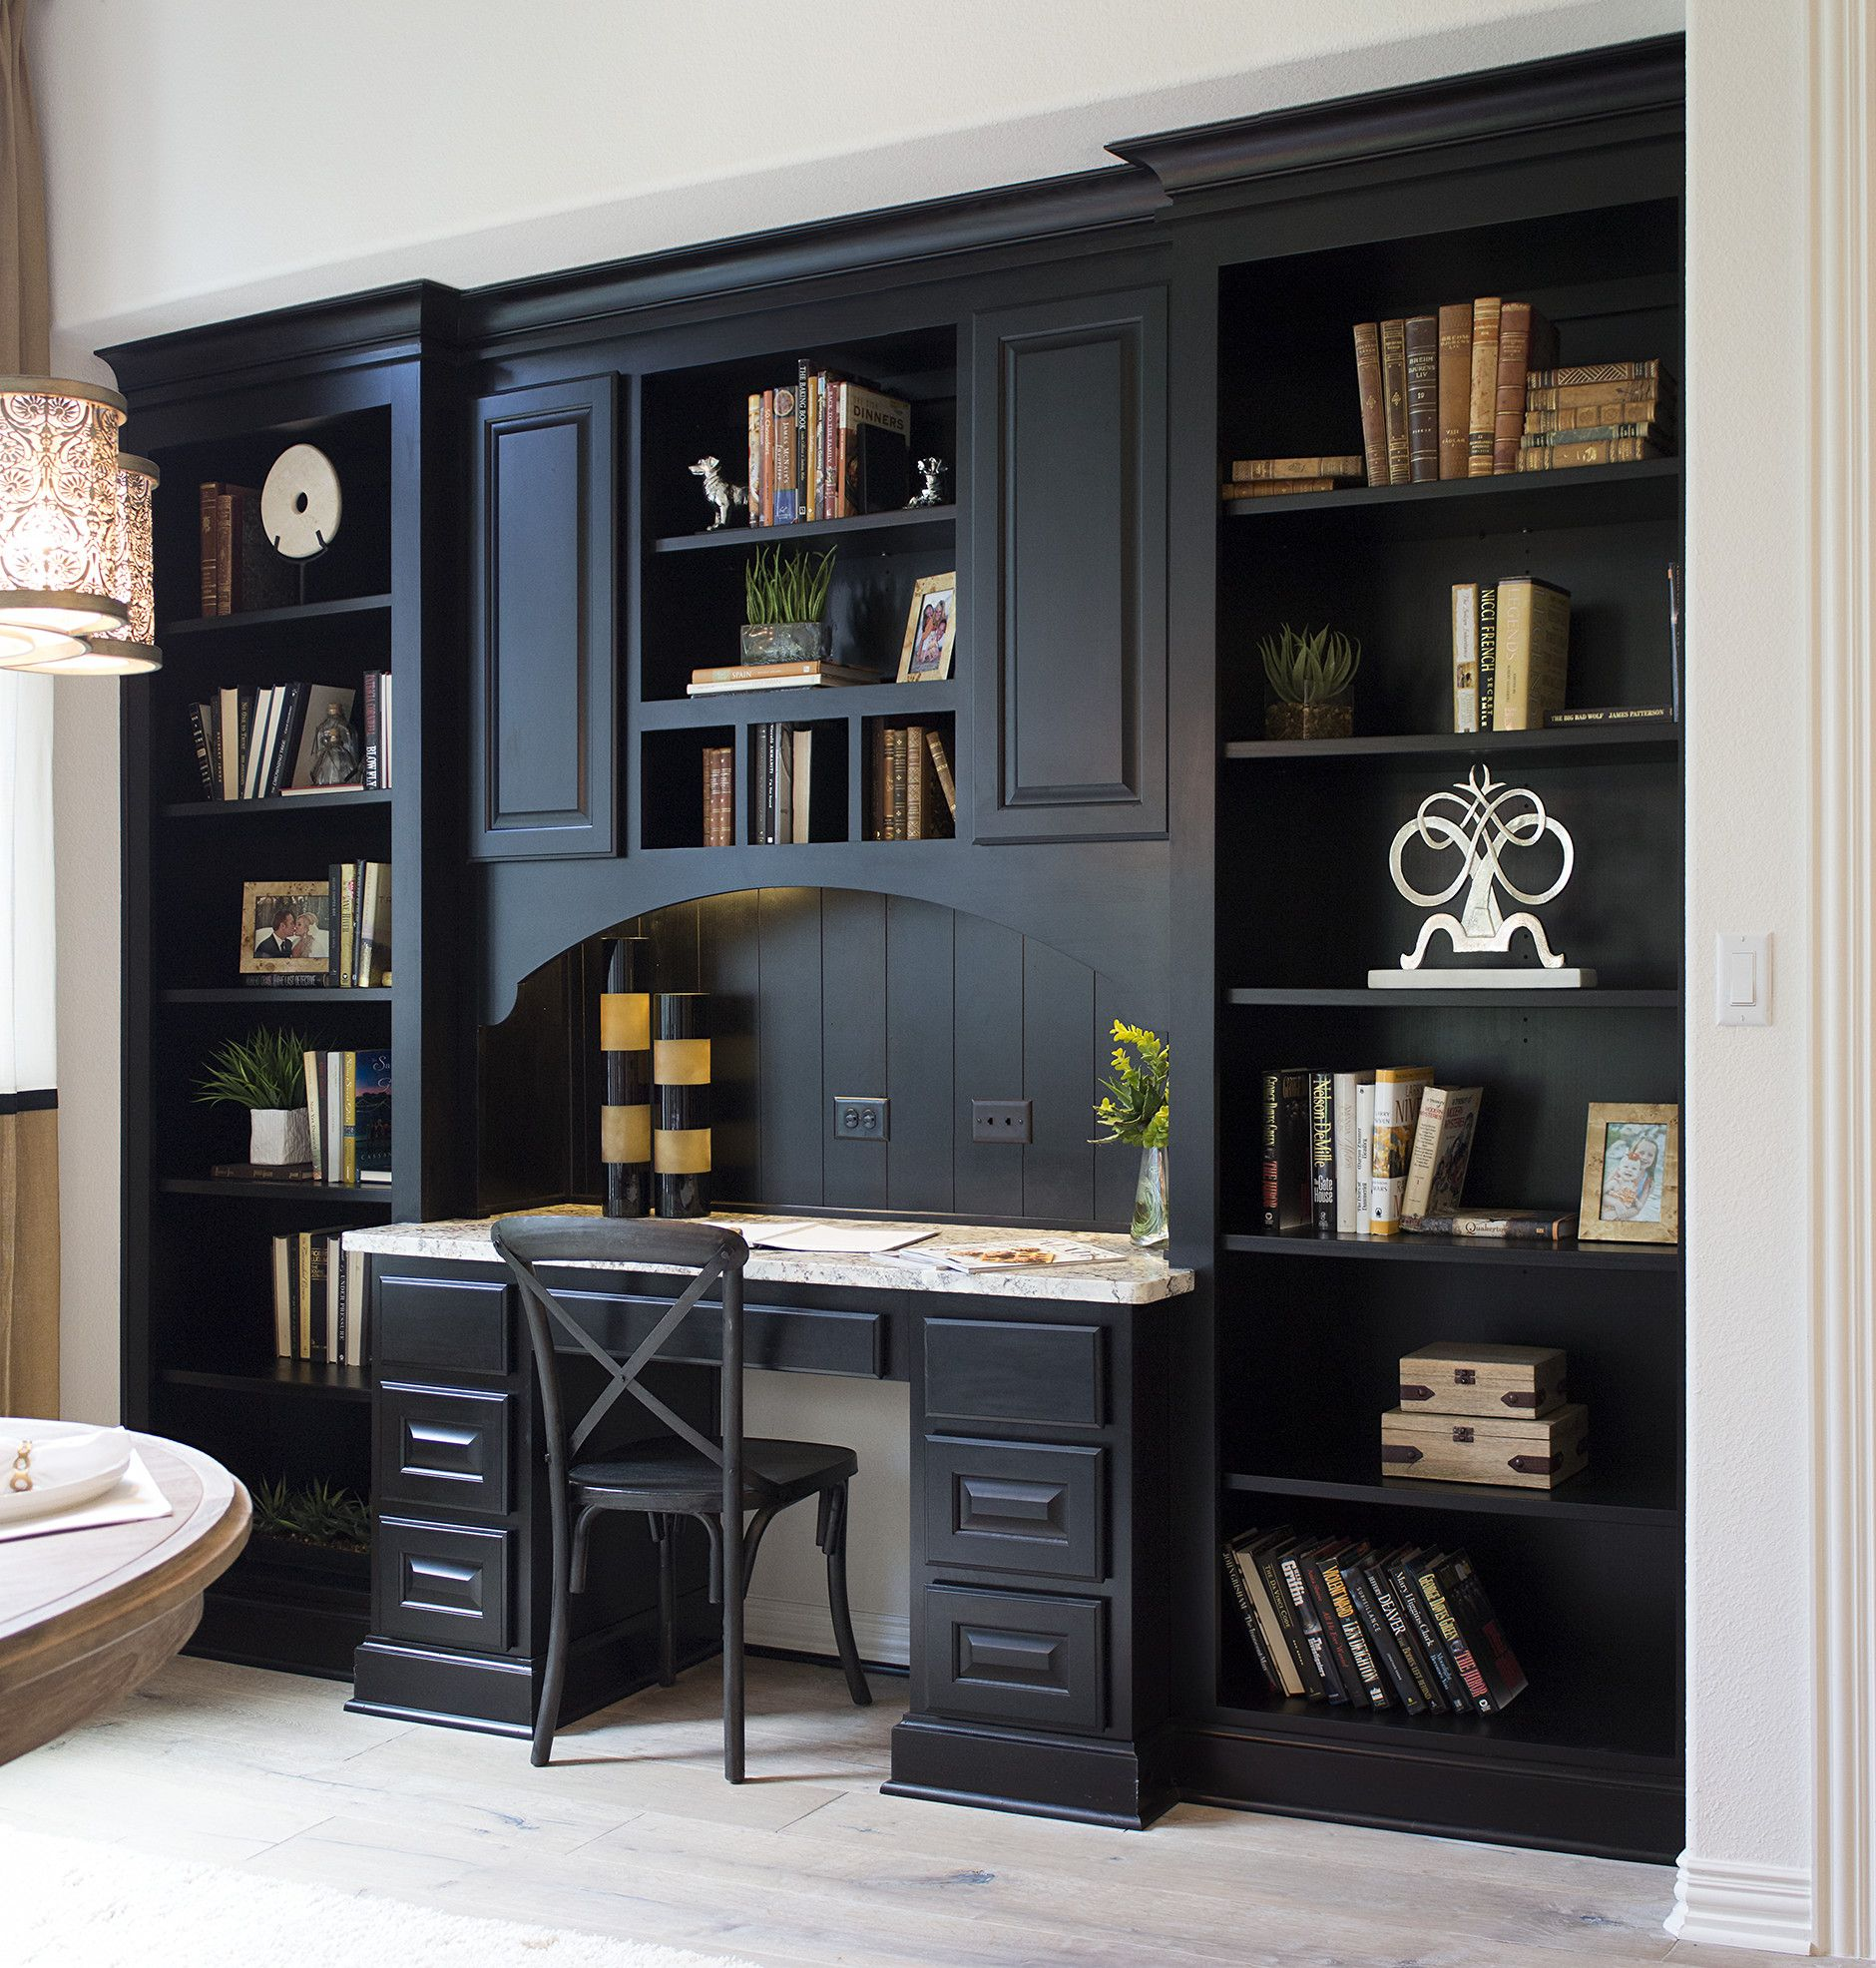 Dining Room Workstation With Built In Desk And Bookshelves Cabinet Doors By Taylorcraft Cabi Home Office Cabinets Office Cabinet Design Home Office Furniture